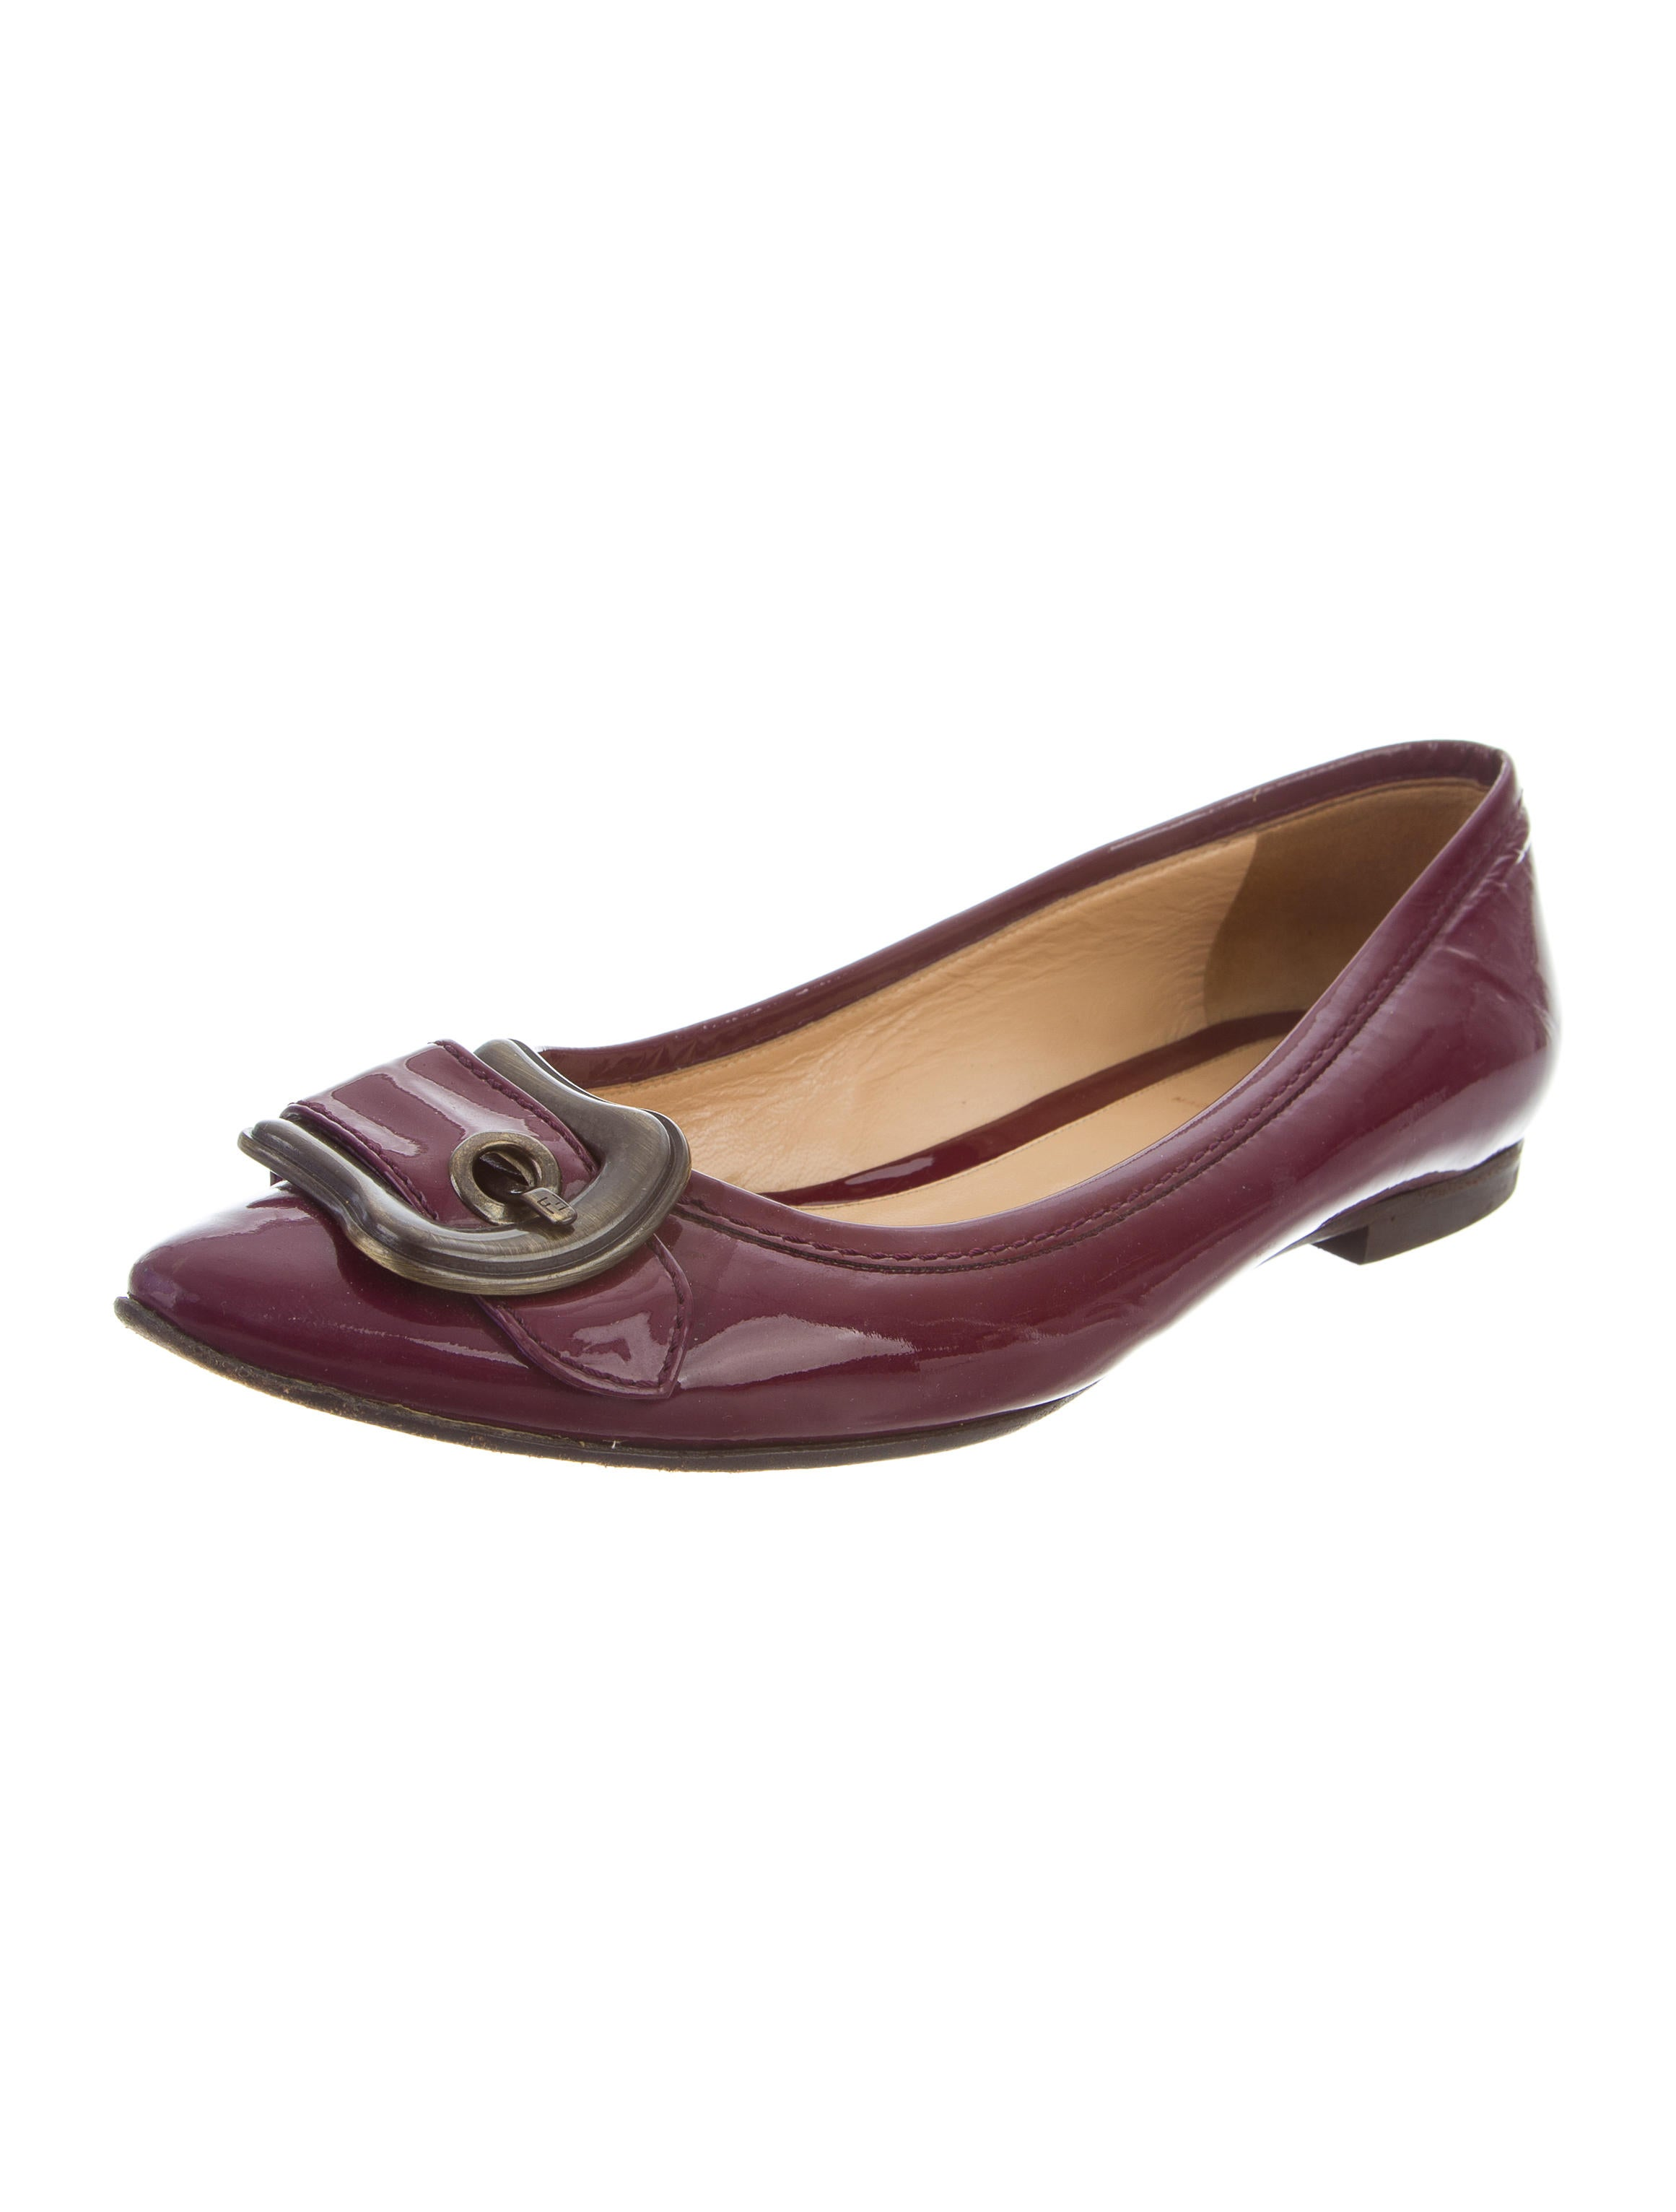 Fendi Patent Leather Buckle Adorned Flats for sale discount sale amazon footaction buy cheap Manchester cost cheap price best prices sale online YNq0BXDs